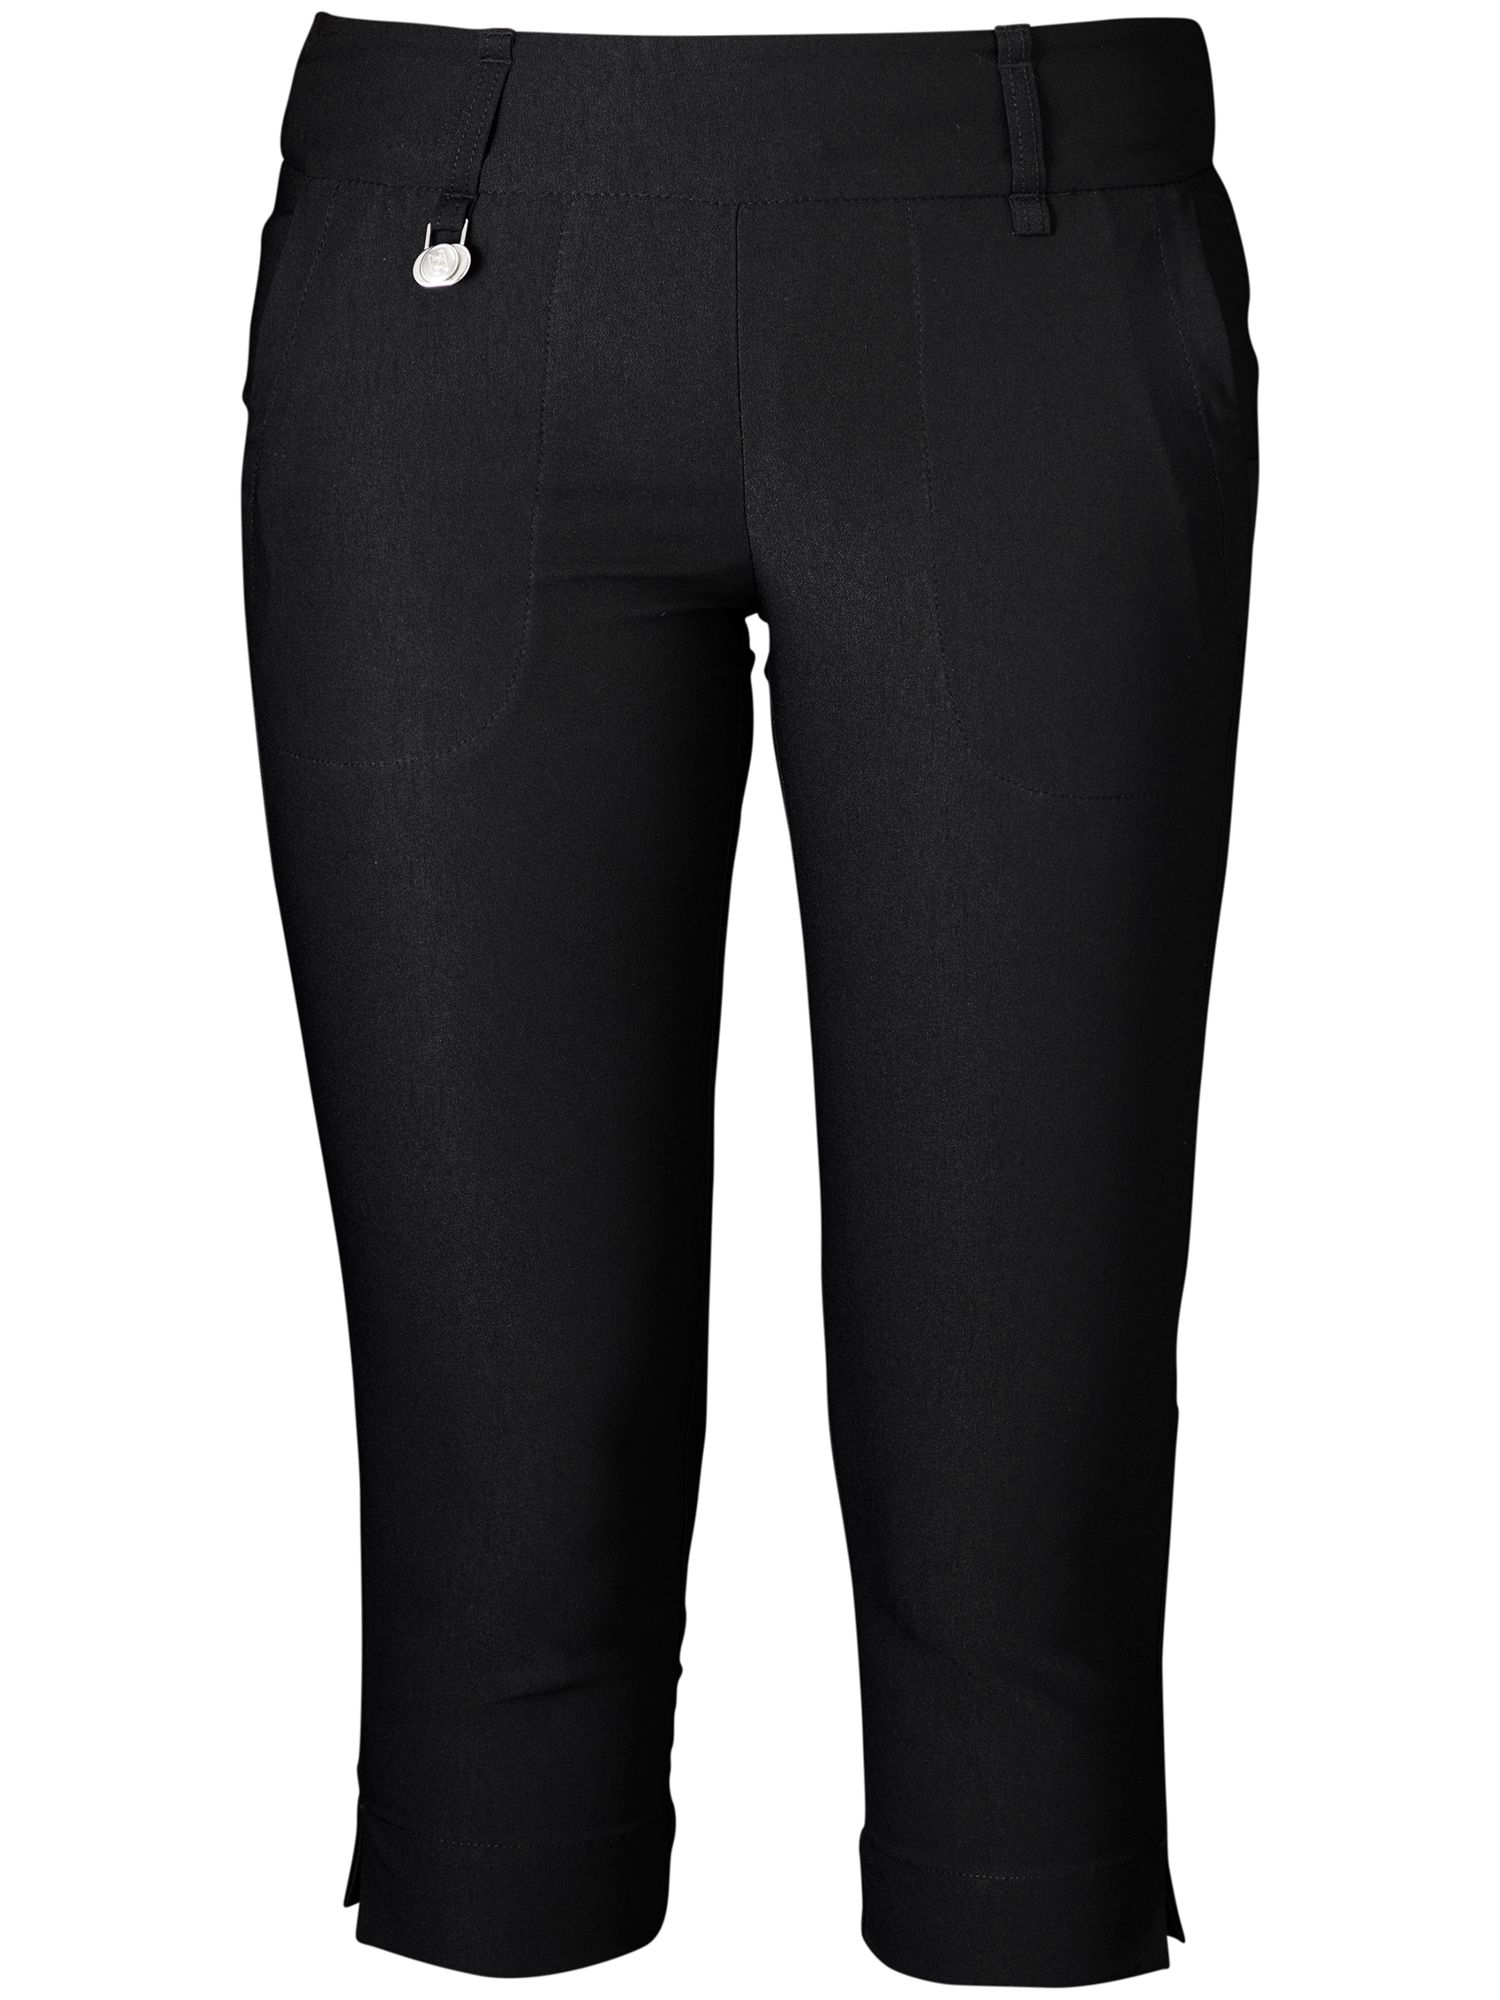 Daily Sports Magic Capri, Black